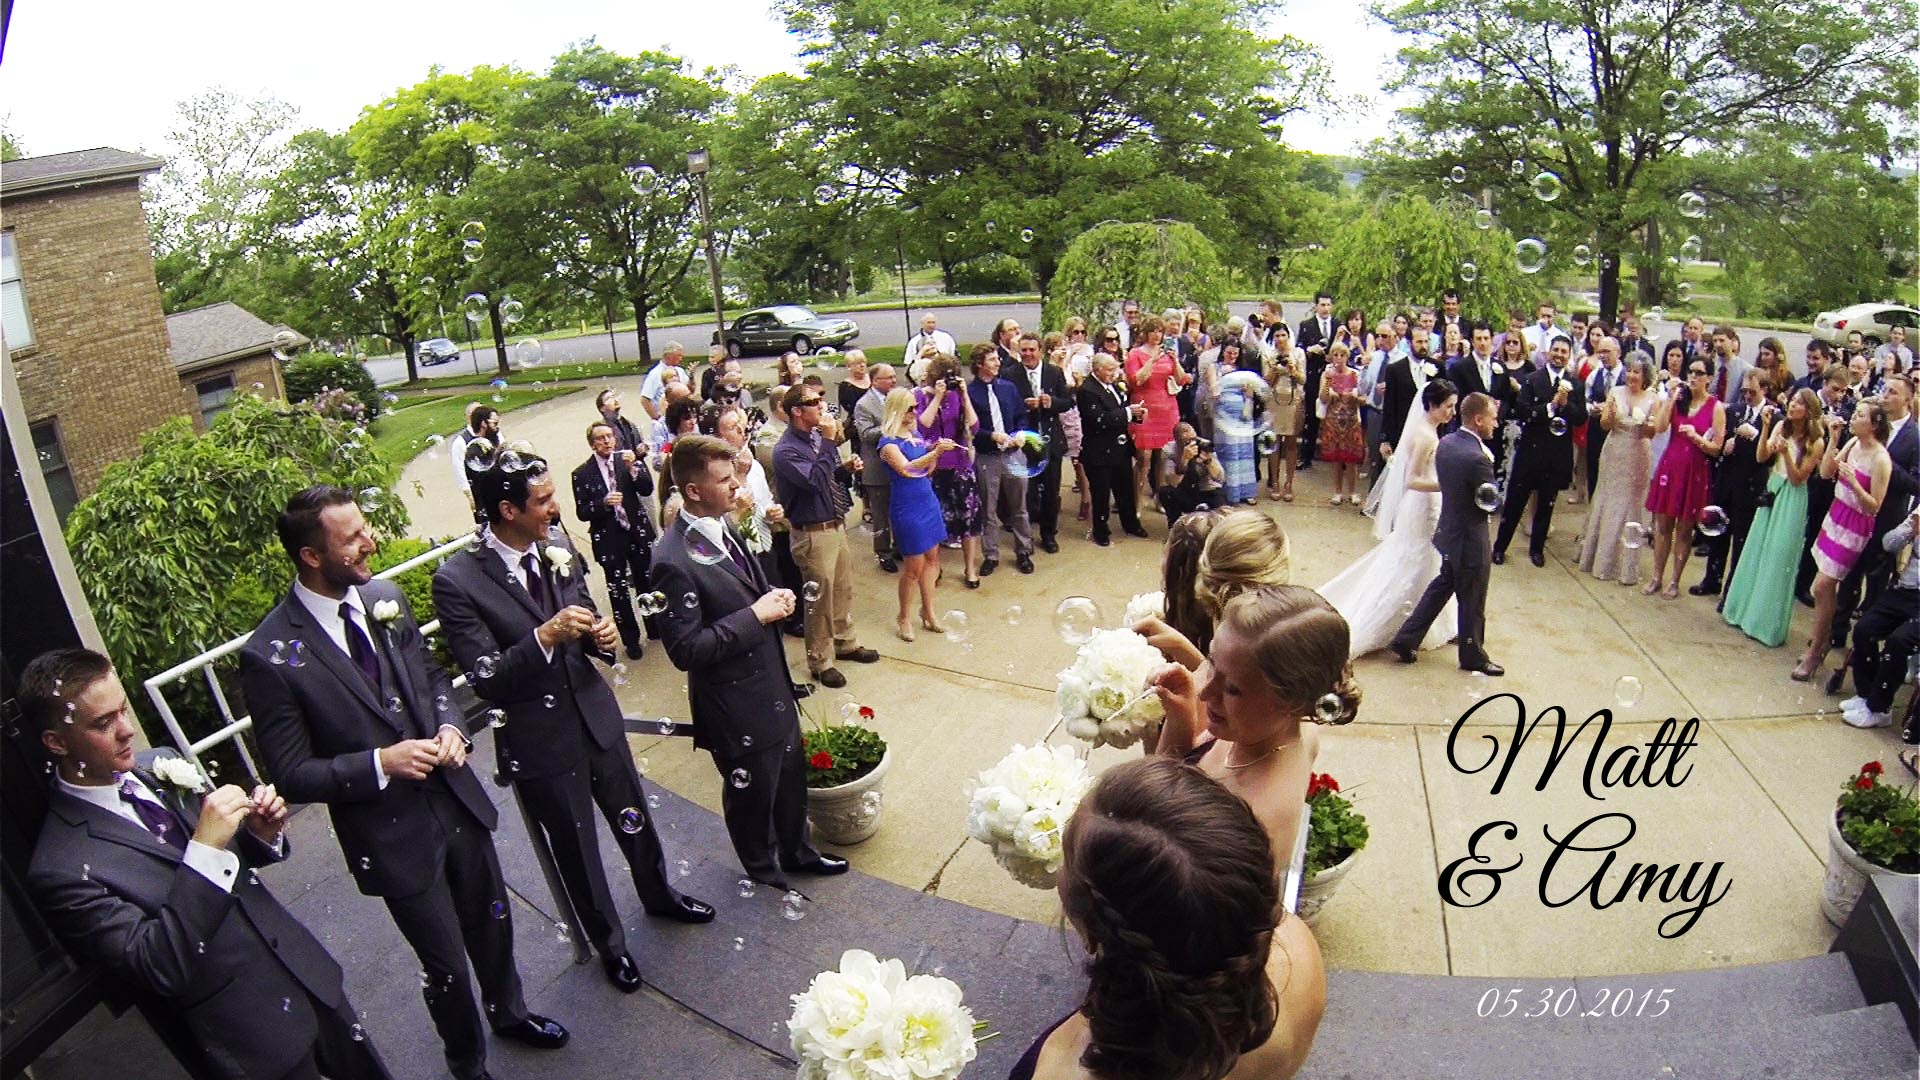 Matt & Amy – Warren, PA Wedding Video